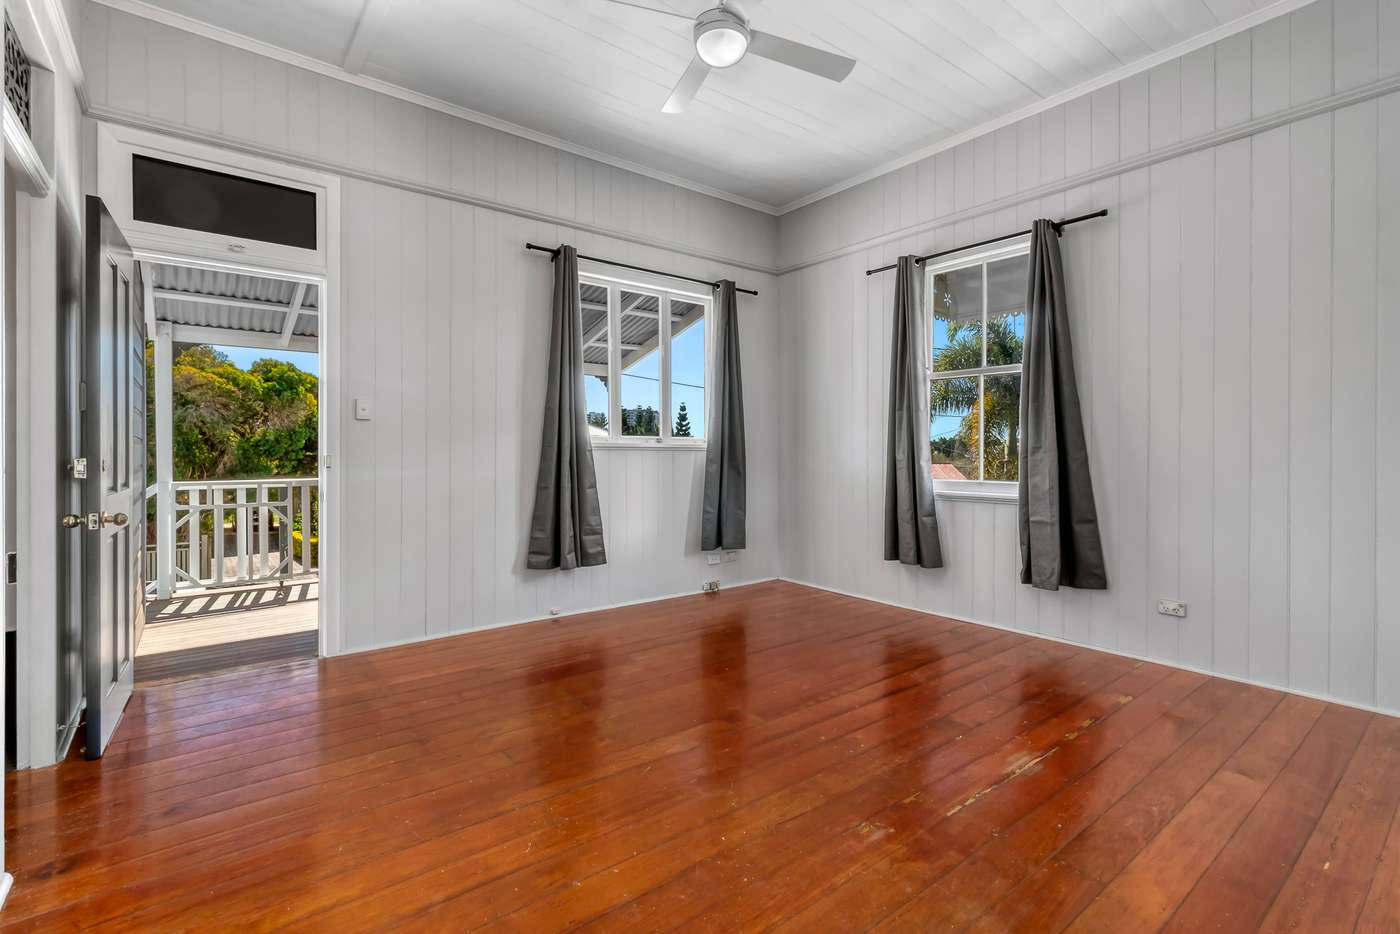 Fifth view of Homely house listing, 14 Albert St, Woolloongabba QLD 4102